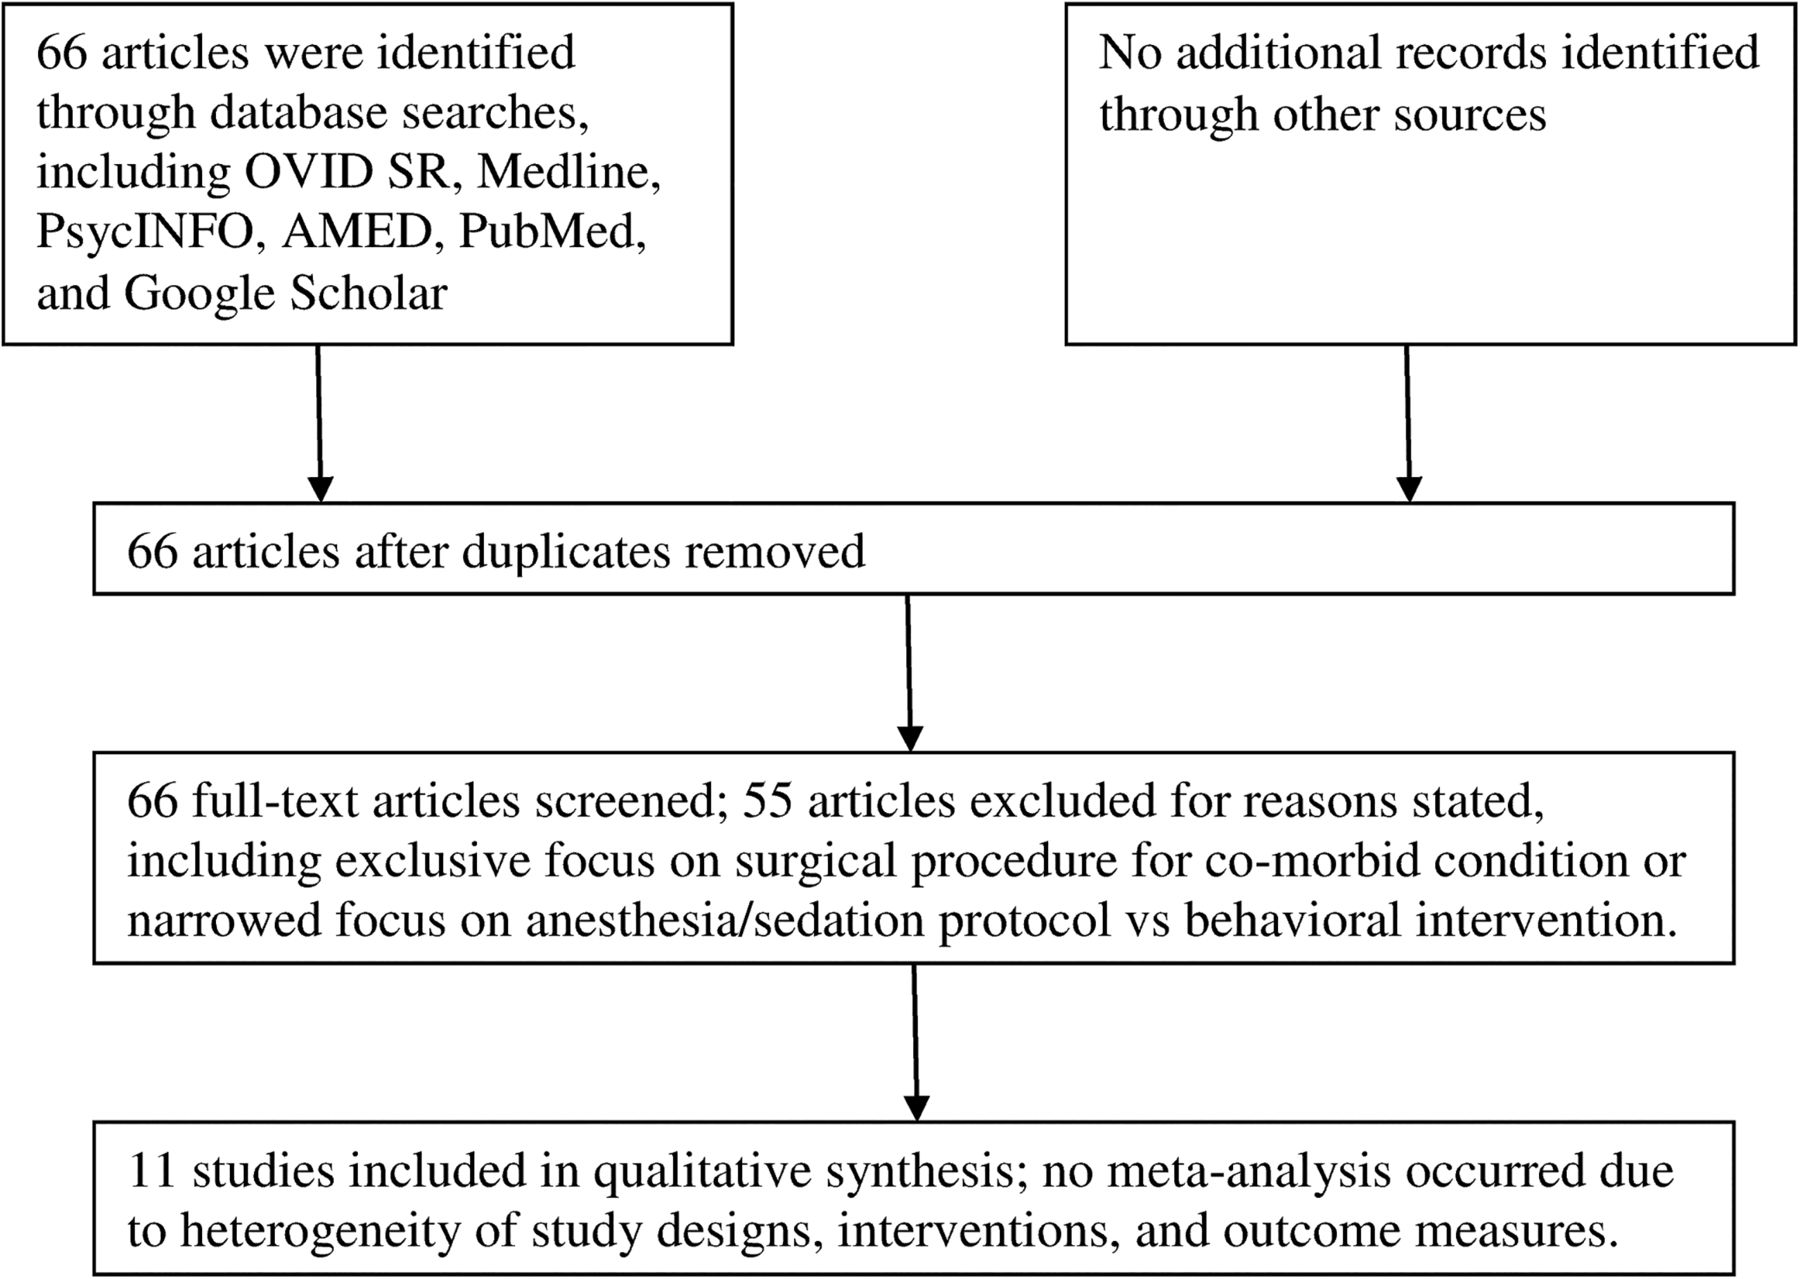 literature review on autism interventions Systematic reviews of psychosocial interventions for autism: an umbrella review our literature search systematic reviews of psychosocial interventions for.